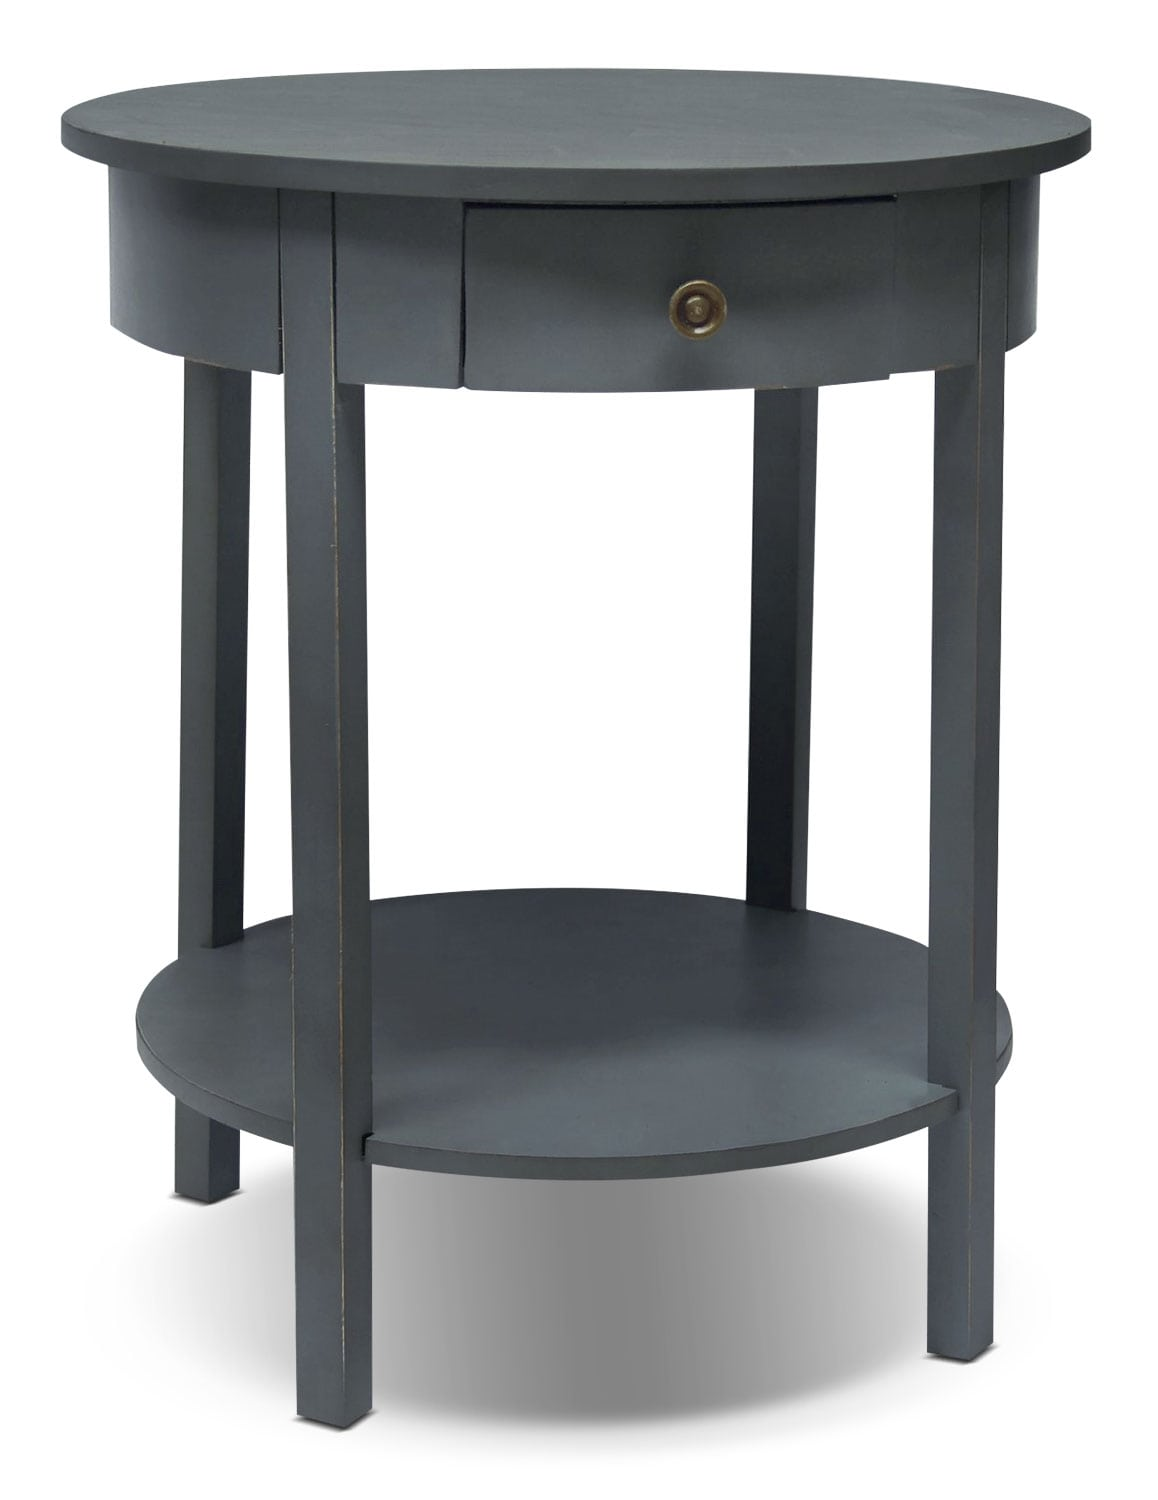 Table d'appoint Grafton - bleu ardoise